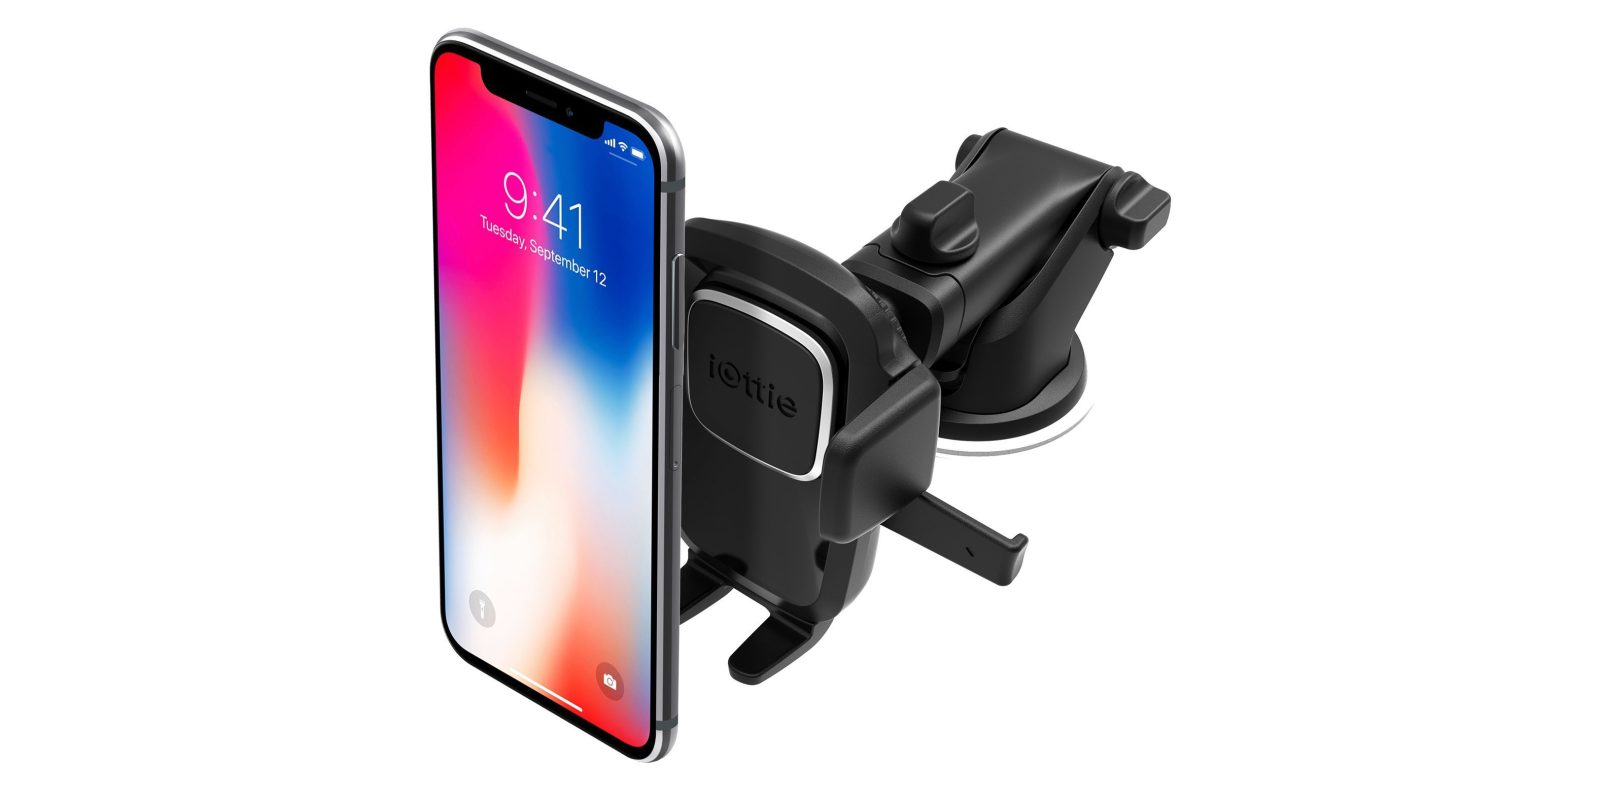 Amazon has iOttie smartphone mounts on sale from $12.50 today with new lows